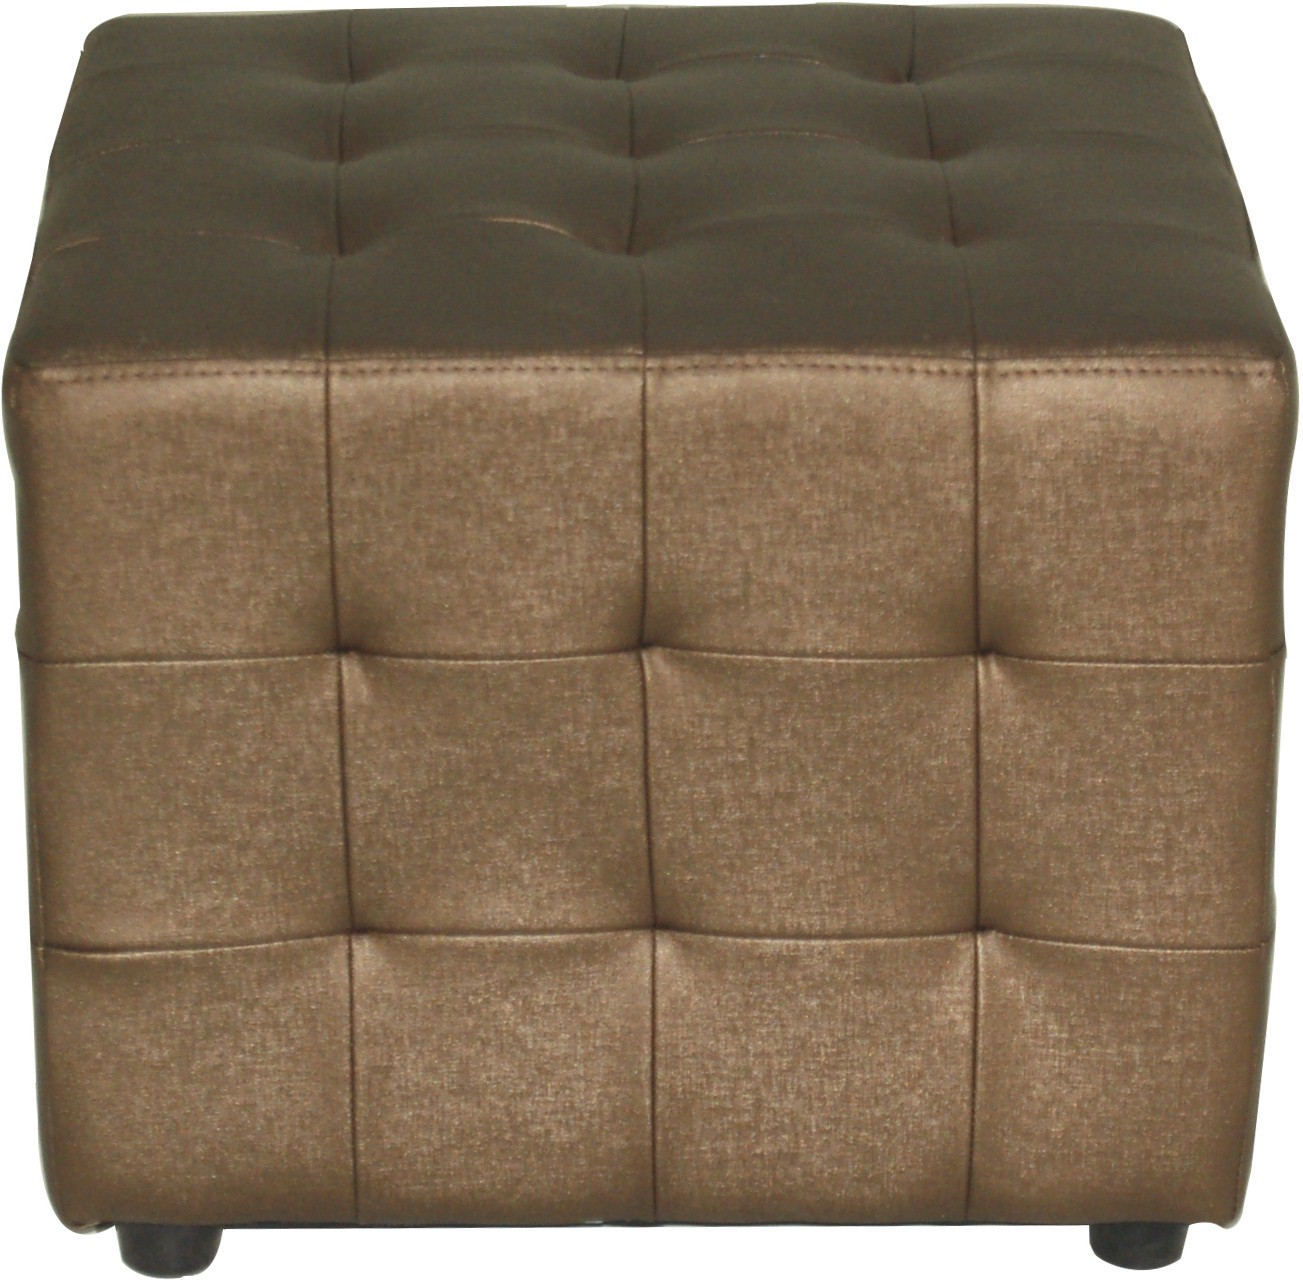 View Furnitech Engineered Wood Standard Ottoman(Finish Color - Copper) Furniture (Furnitech)